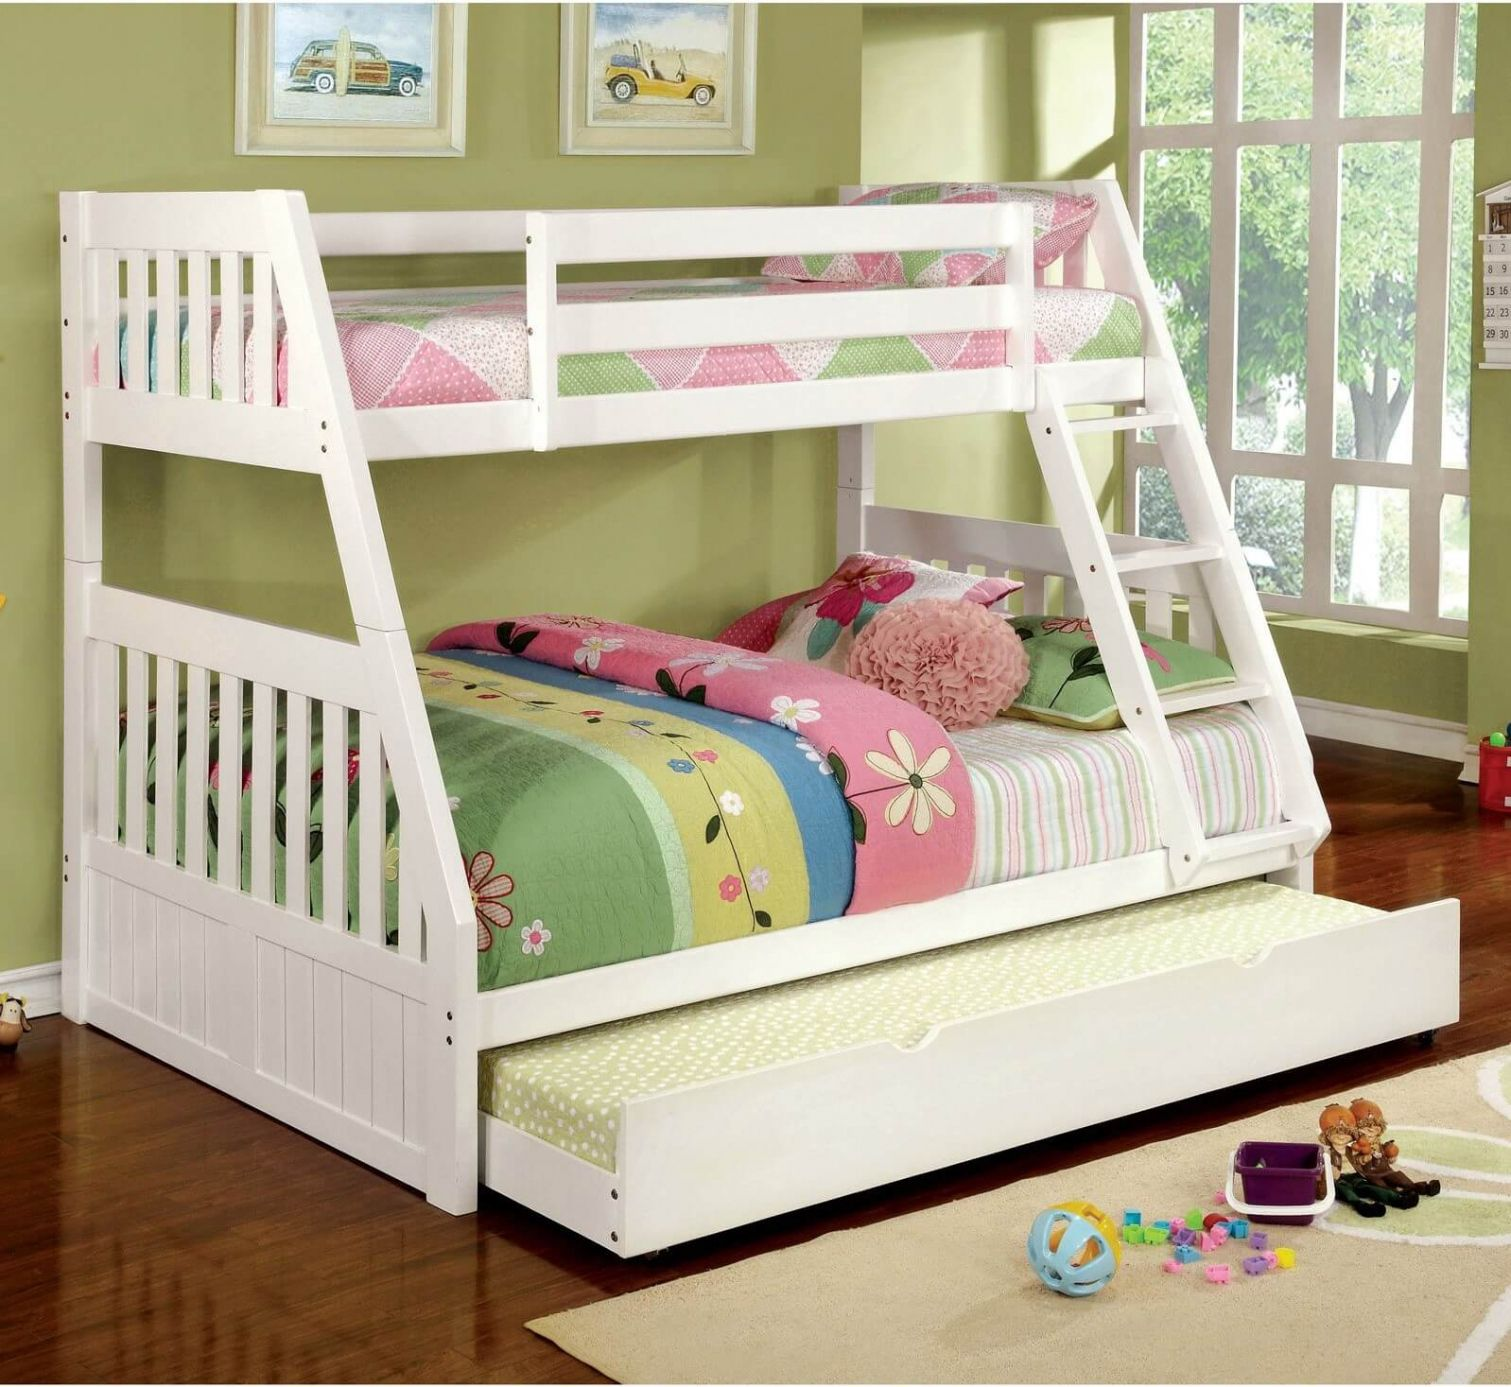 30 Twin Mattress For Bunk Beds Interior Design Bedroom Ideas Check More At Http